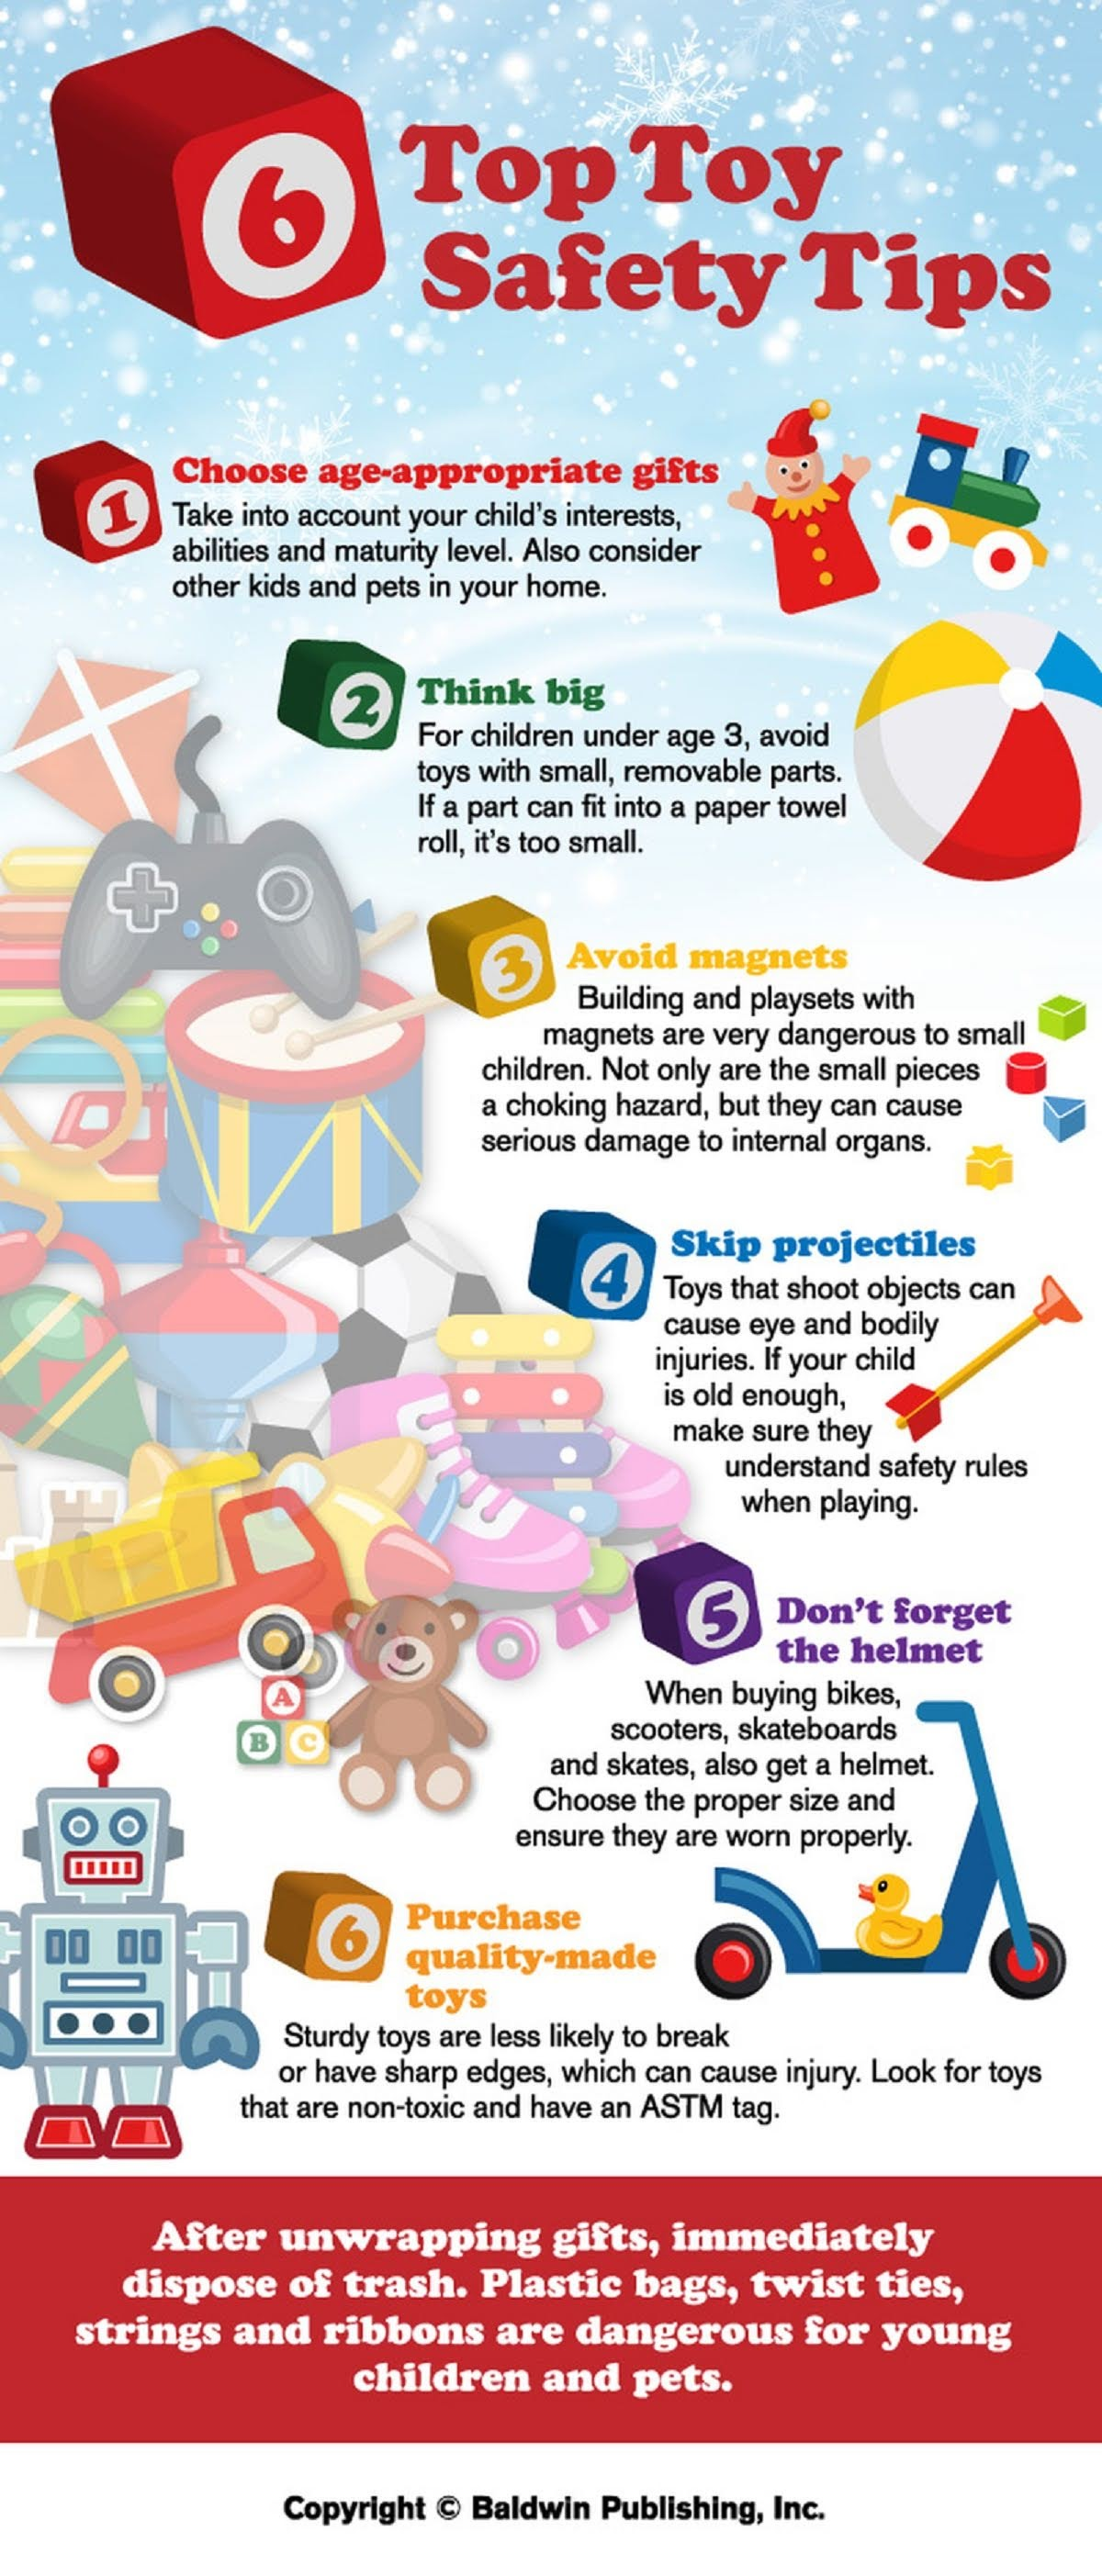 six-top-toy-safety-tips-infographic